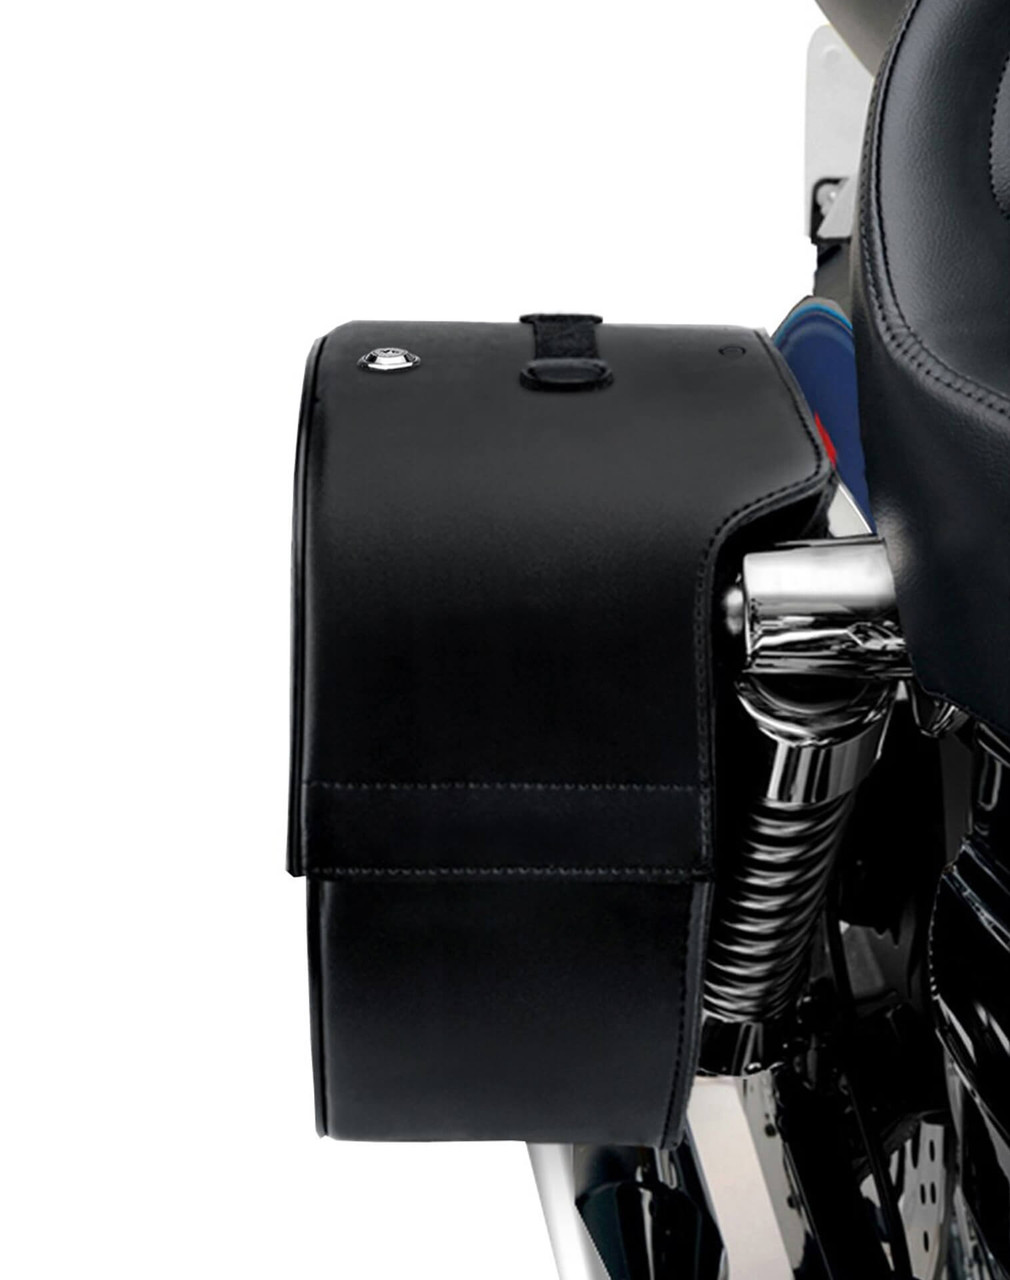 Viking Large Viking Spear Shock Cutout Studded Motorcycle Saddlebags For Harley Sportster Forty Eight 48 Shock Cutout View